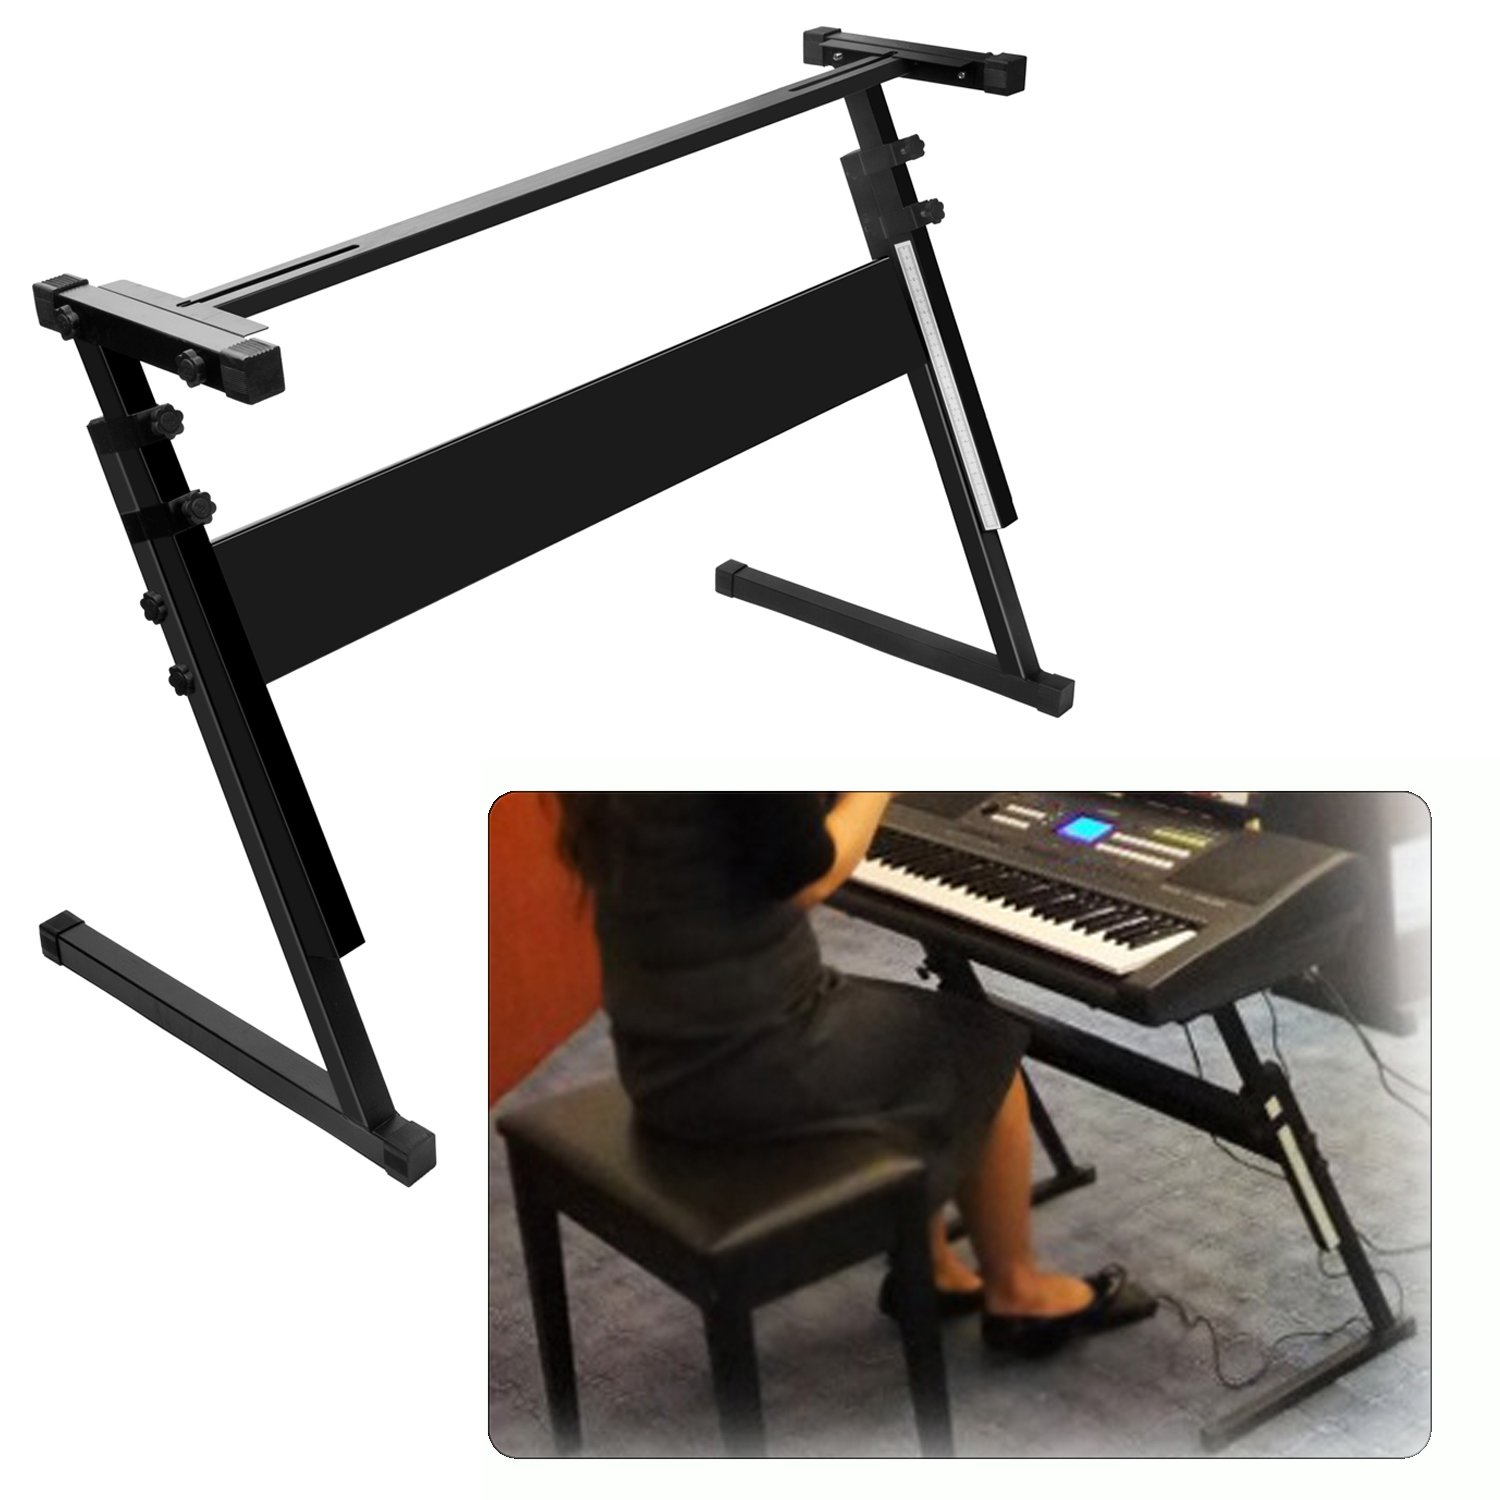 Luvay Keyboard Stand for 61 or 54 keys, Z-Style Folding, Height Adjustable, Heavy Duty (1-inch steel)